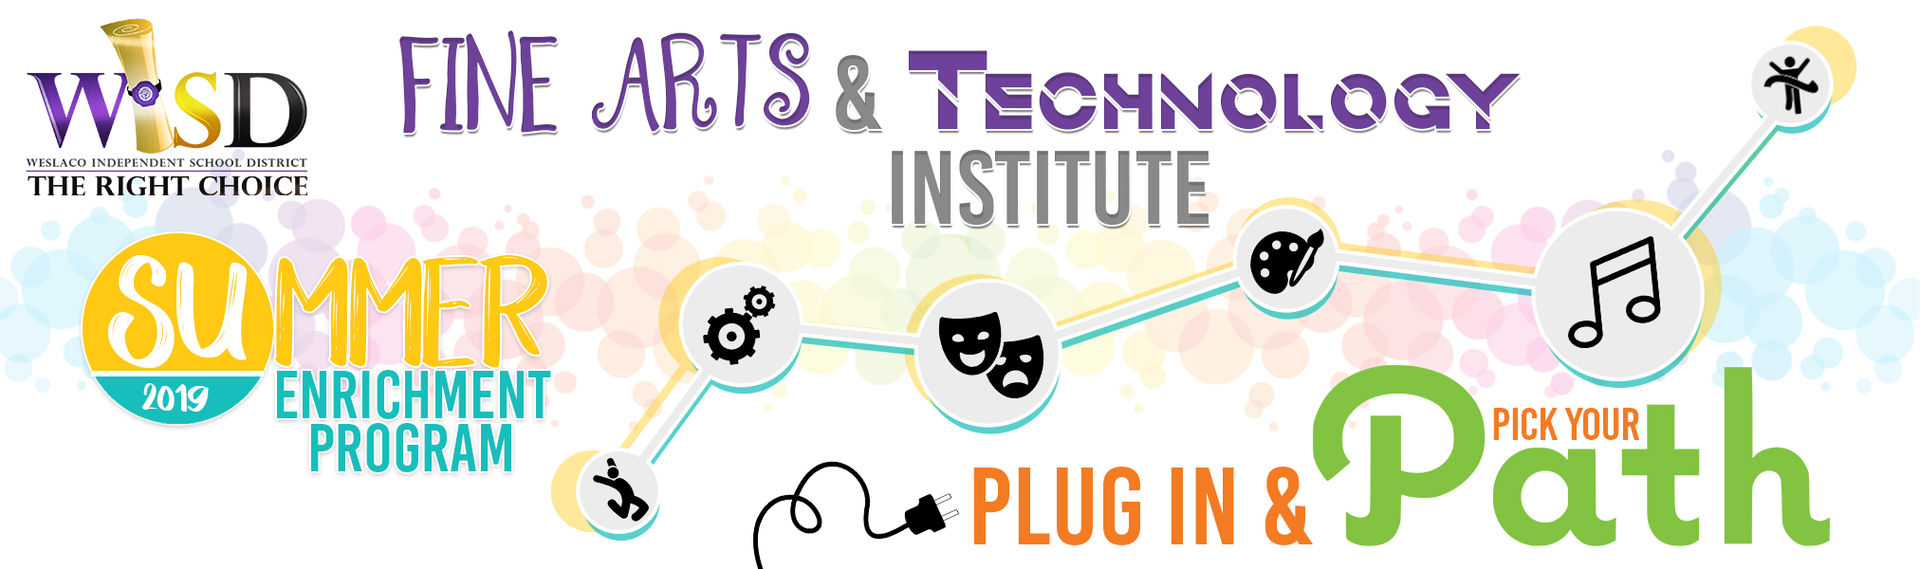 Fine Arts & Technology Institute